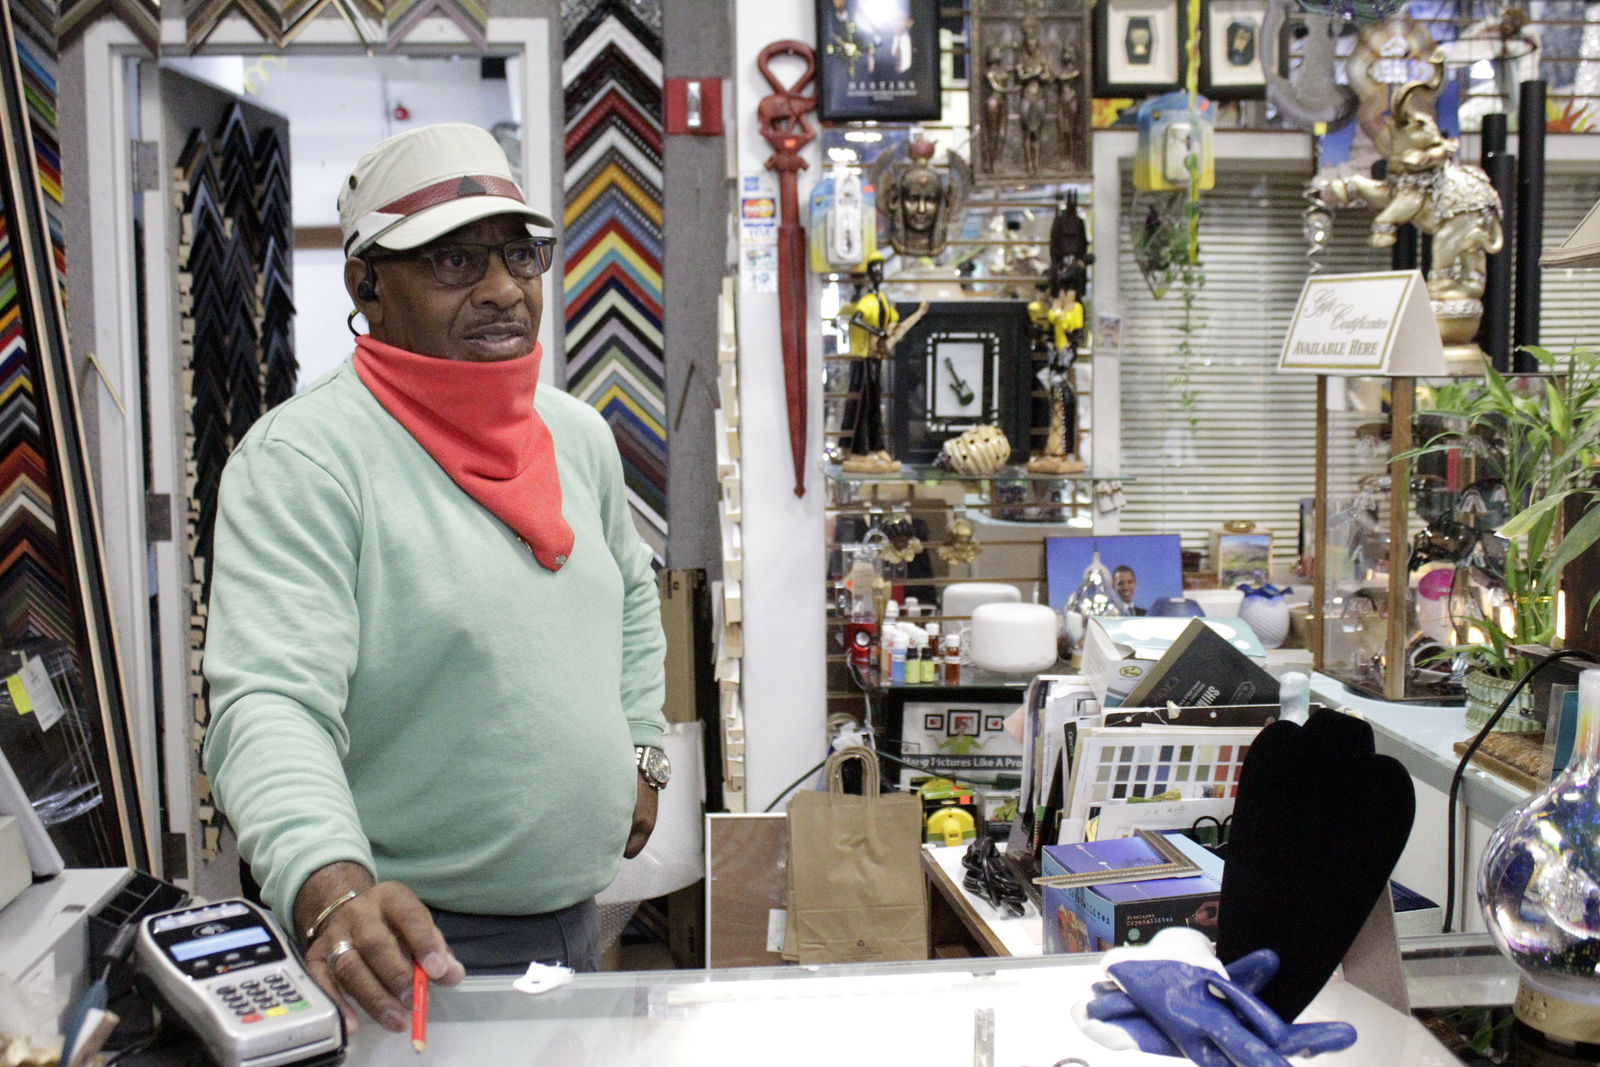 Jerome Polk stands behind the counter of his business, J.P's Custom Framing, on Wednesday, July 1, 2020, as he discusses protests that have been unfolding nightly in a historically Black neighborhood in Portland, Ore. (AP Photo/Gillian Flaccus)